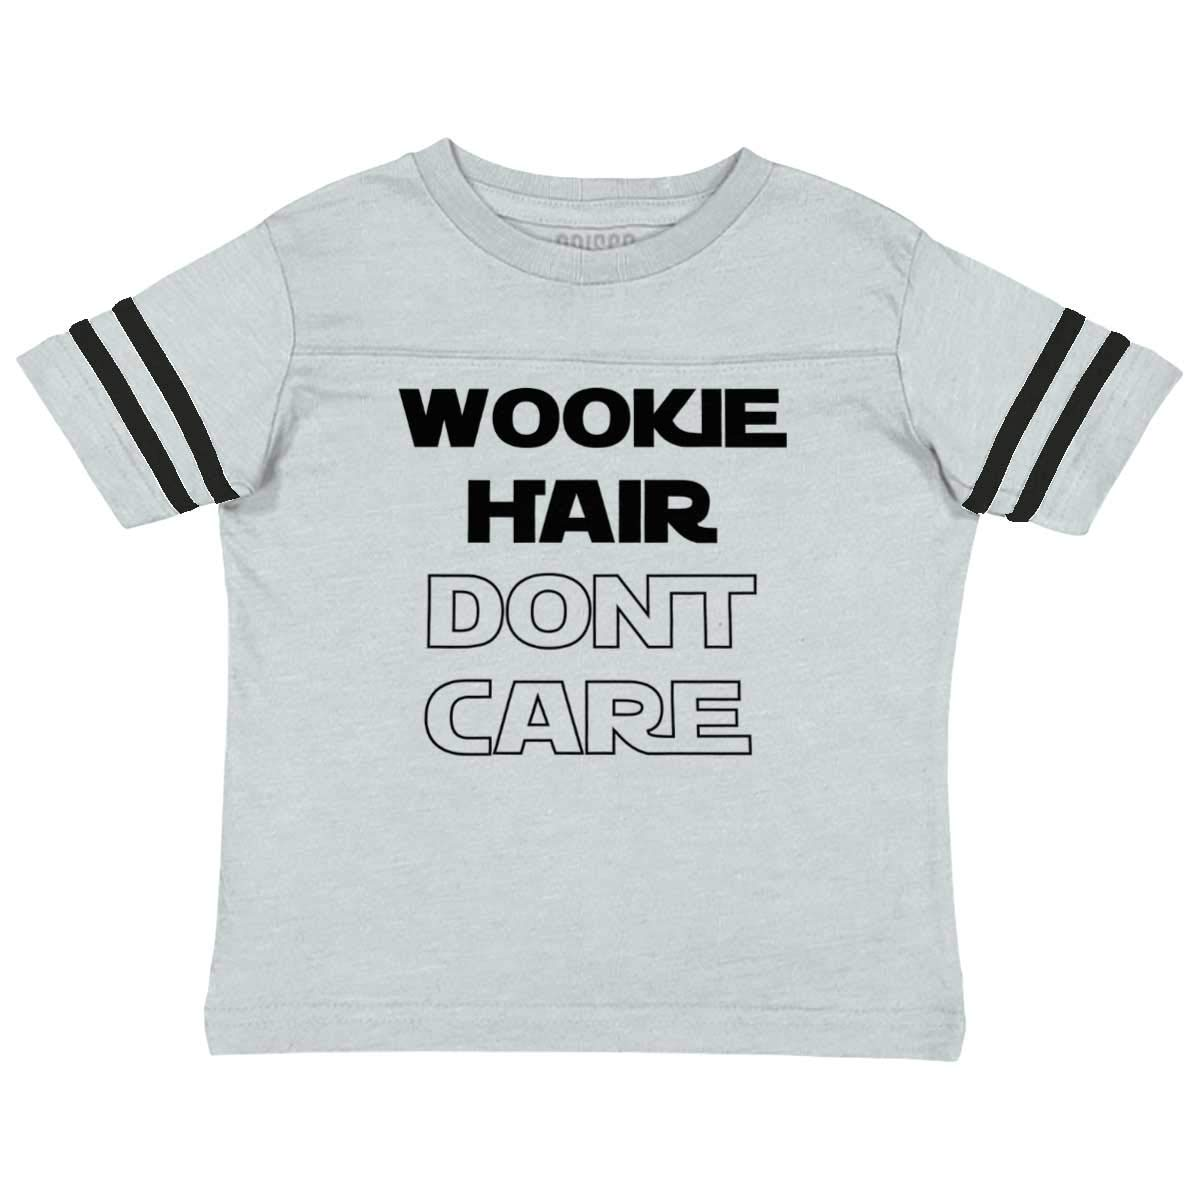 Brisco Brands Wookie Hair Don't Care Cute Nerdy Geeky Football Jersey Tee